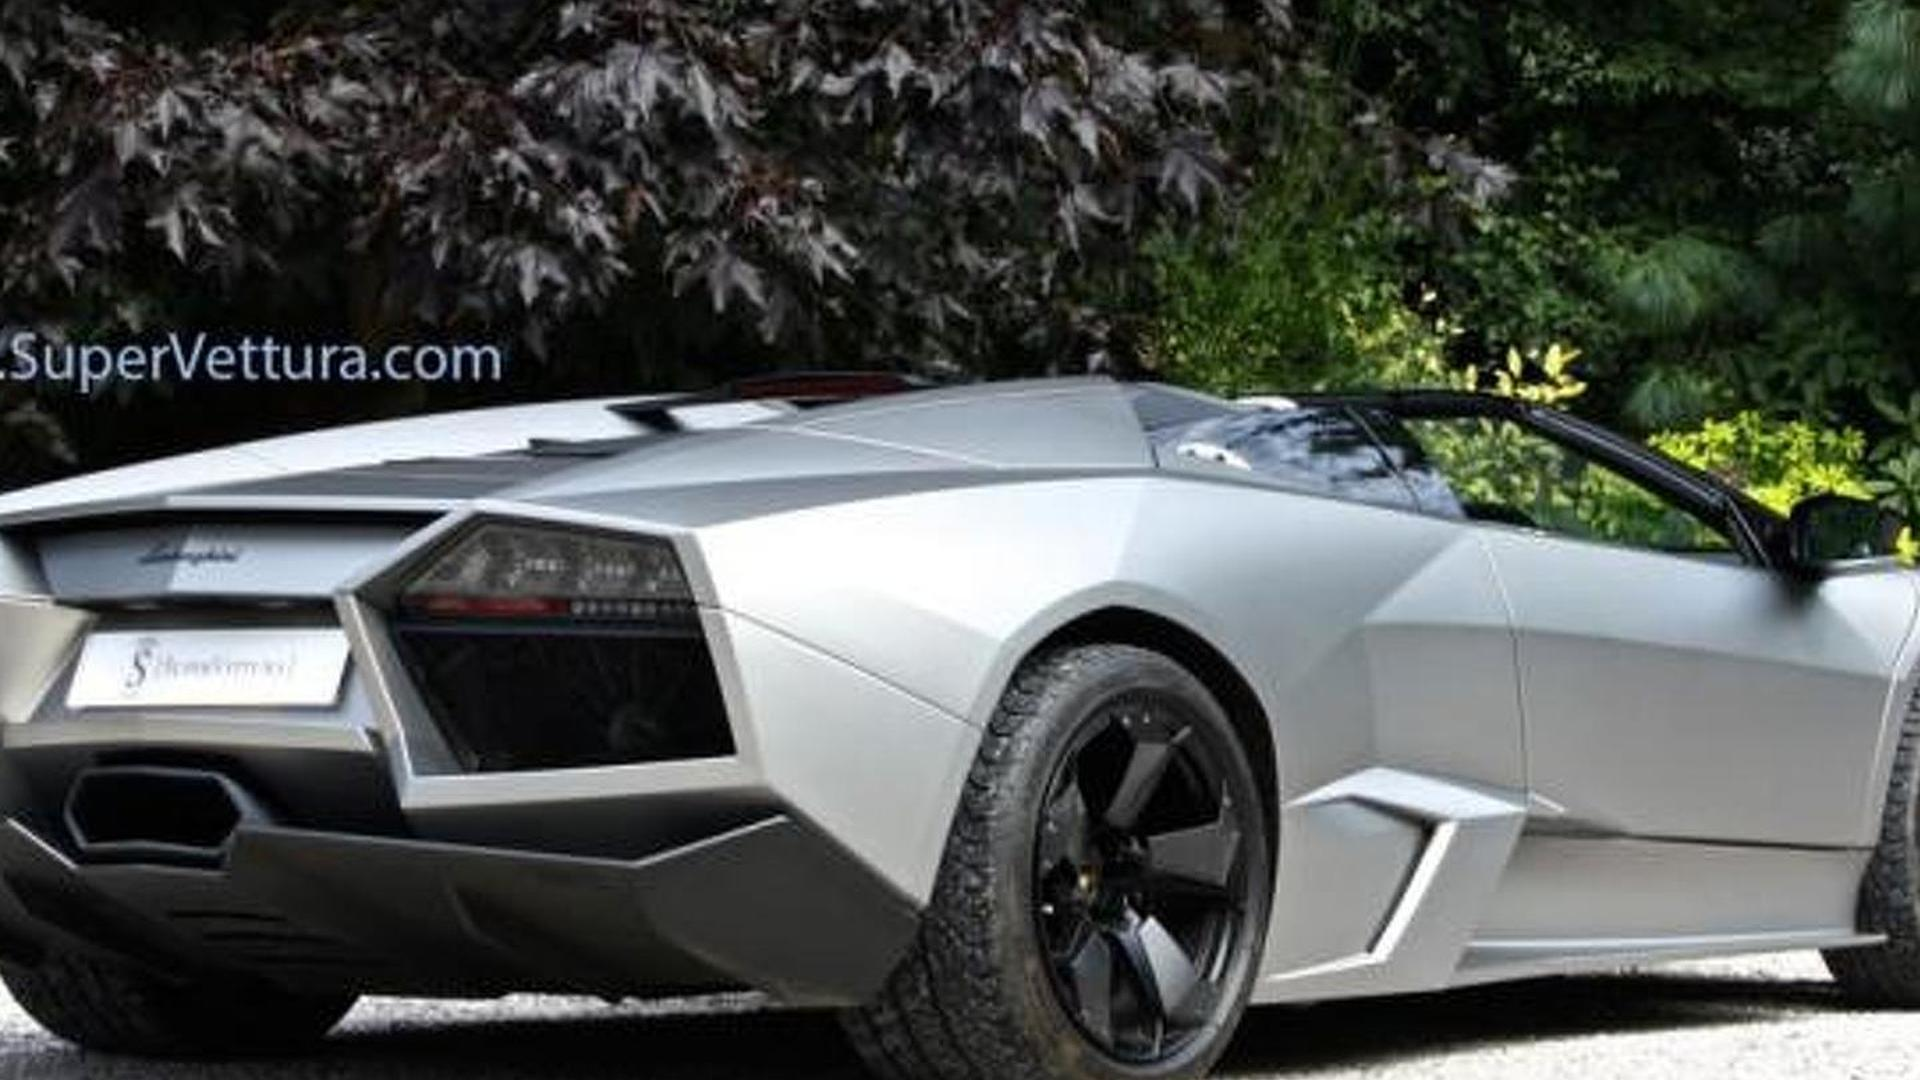 Barely Driven Lamborghini Reventon Roadster On Sale For 1 1m Gbp